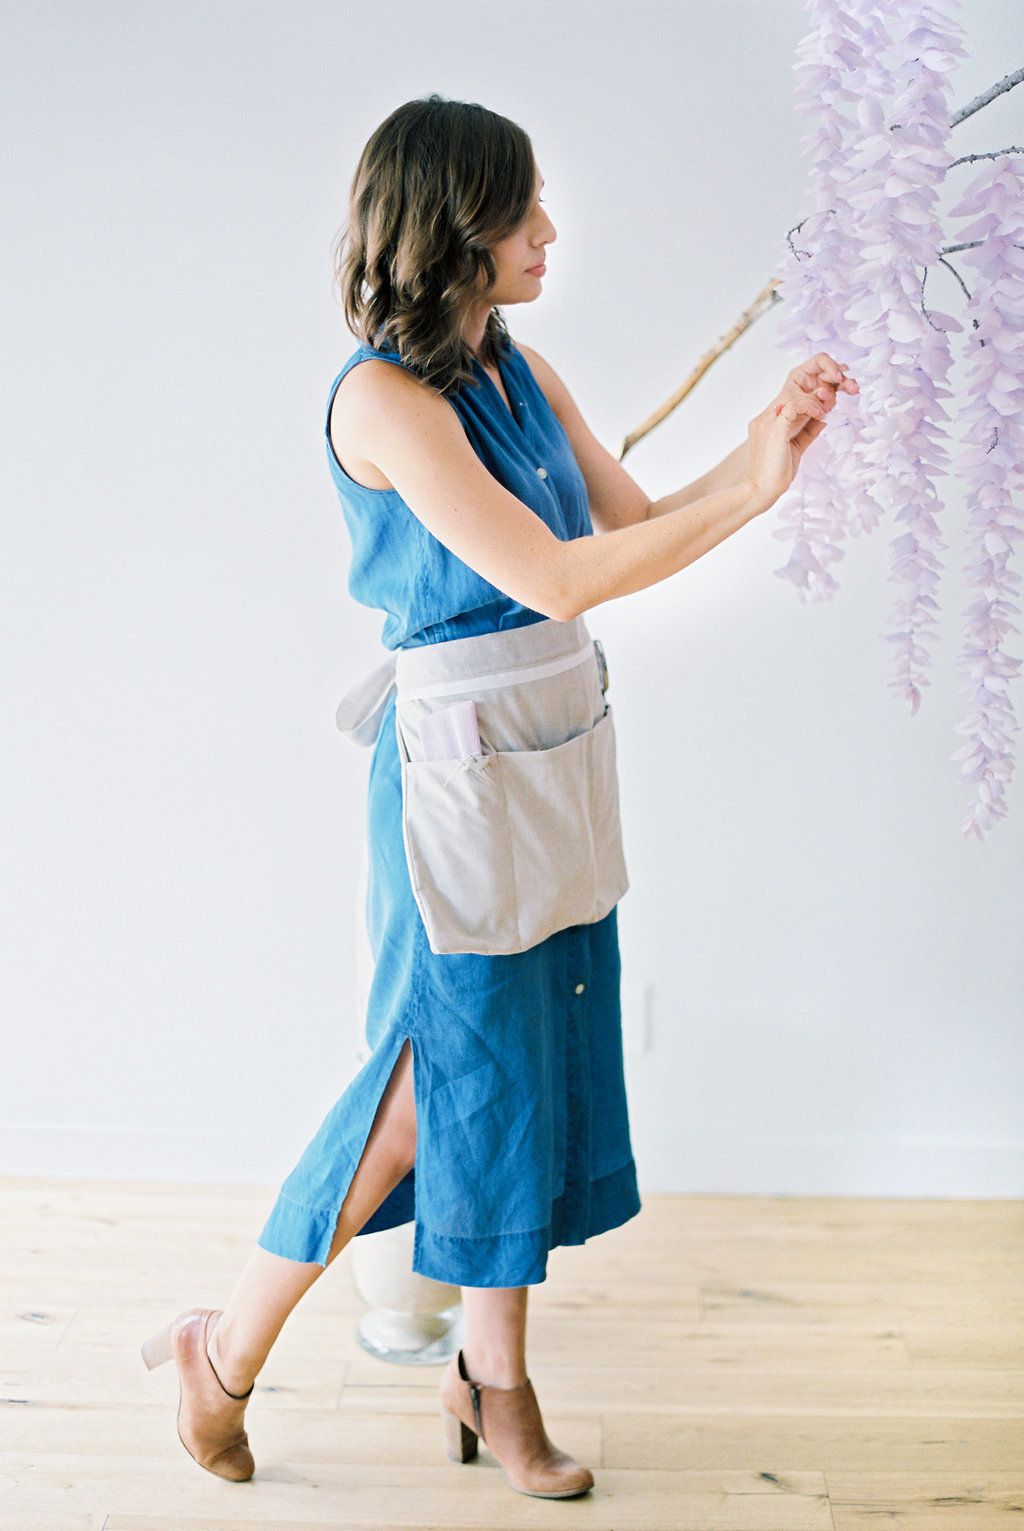 the-makers-apron-melanie-gabrielle-photography-105